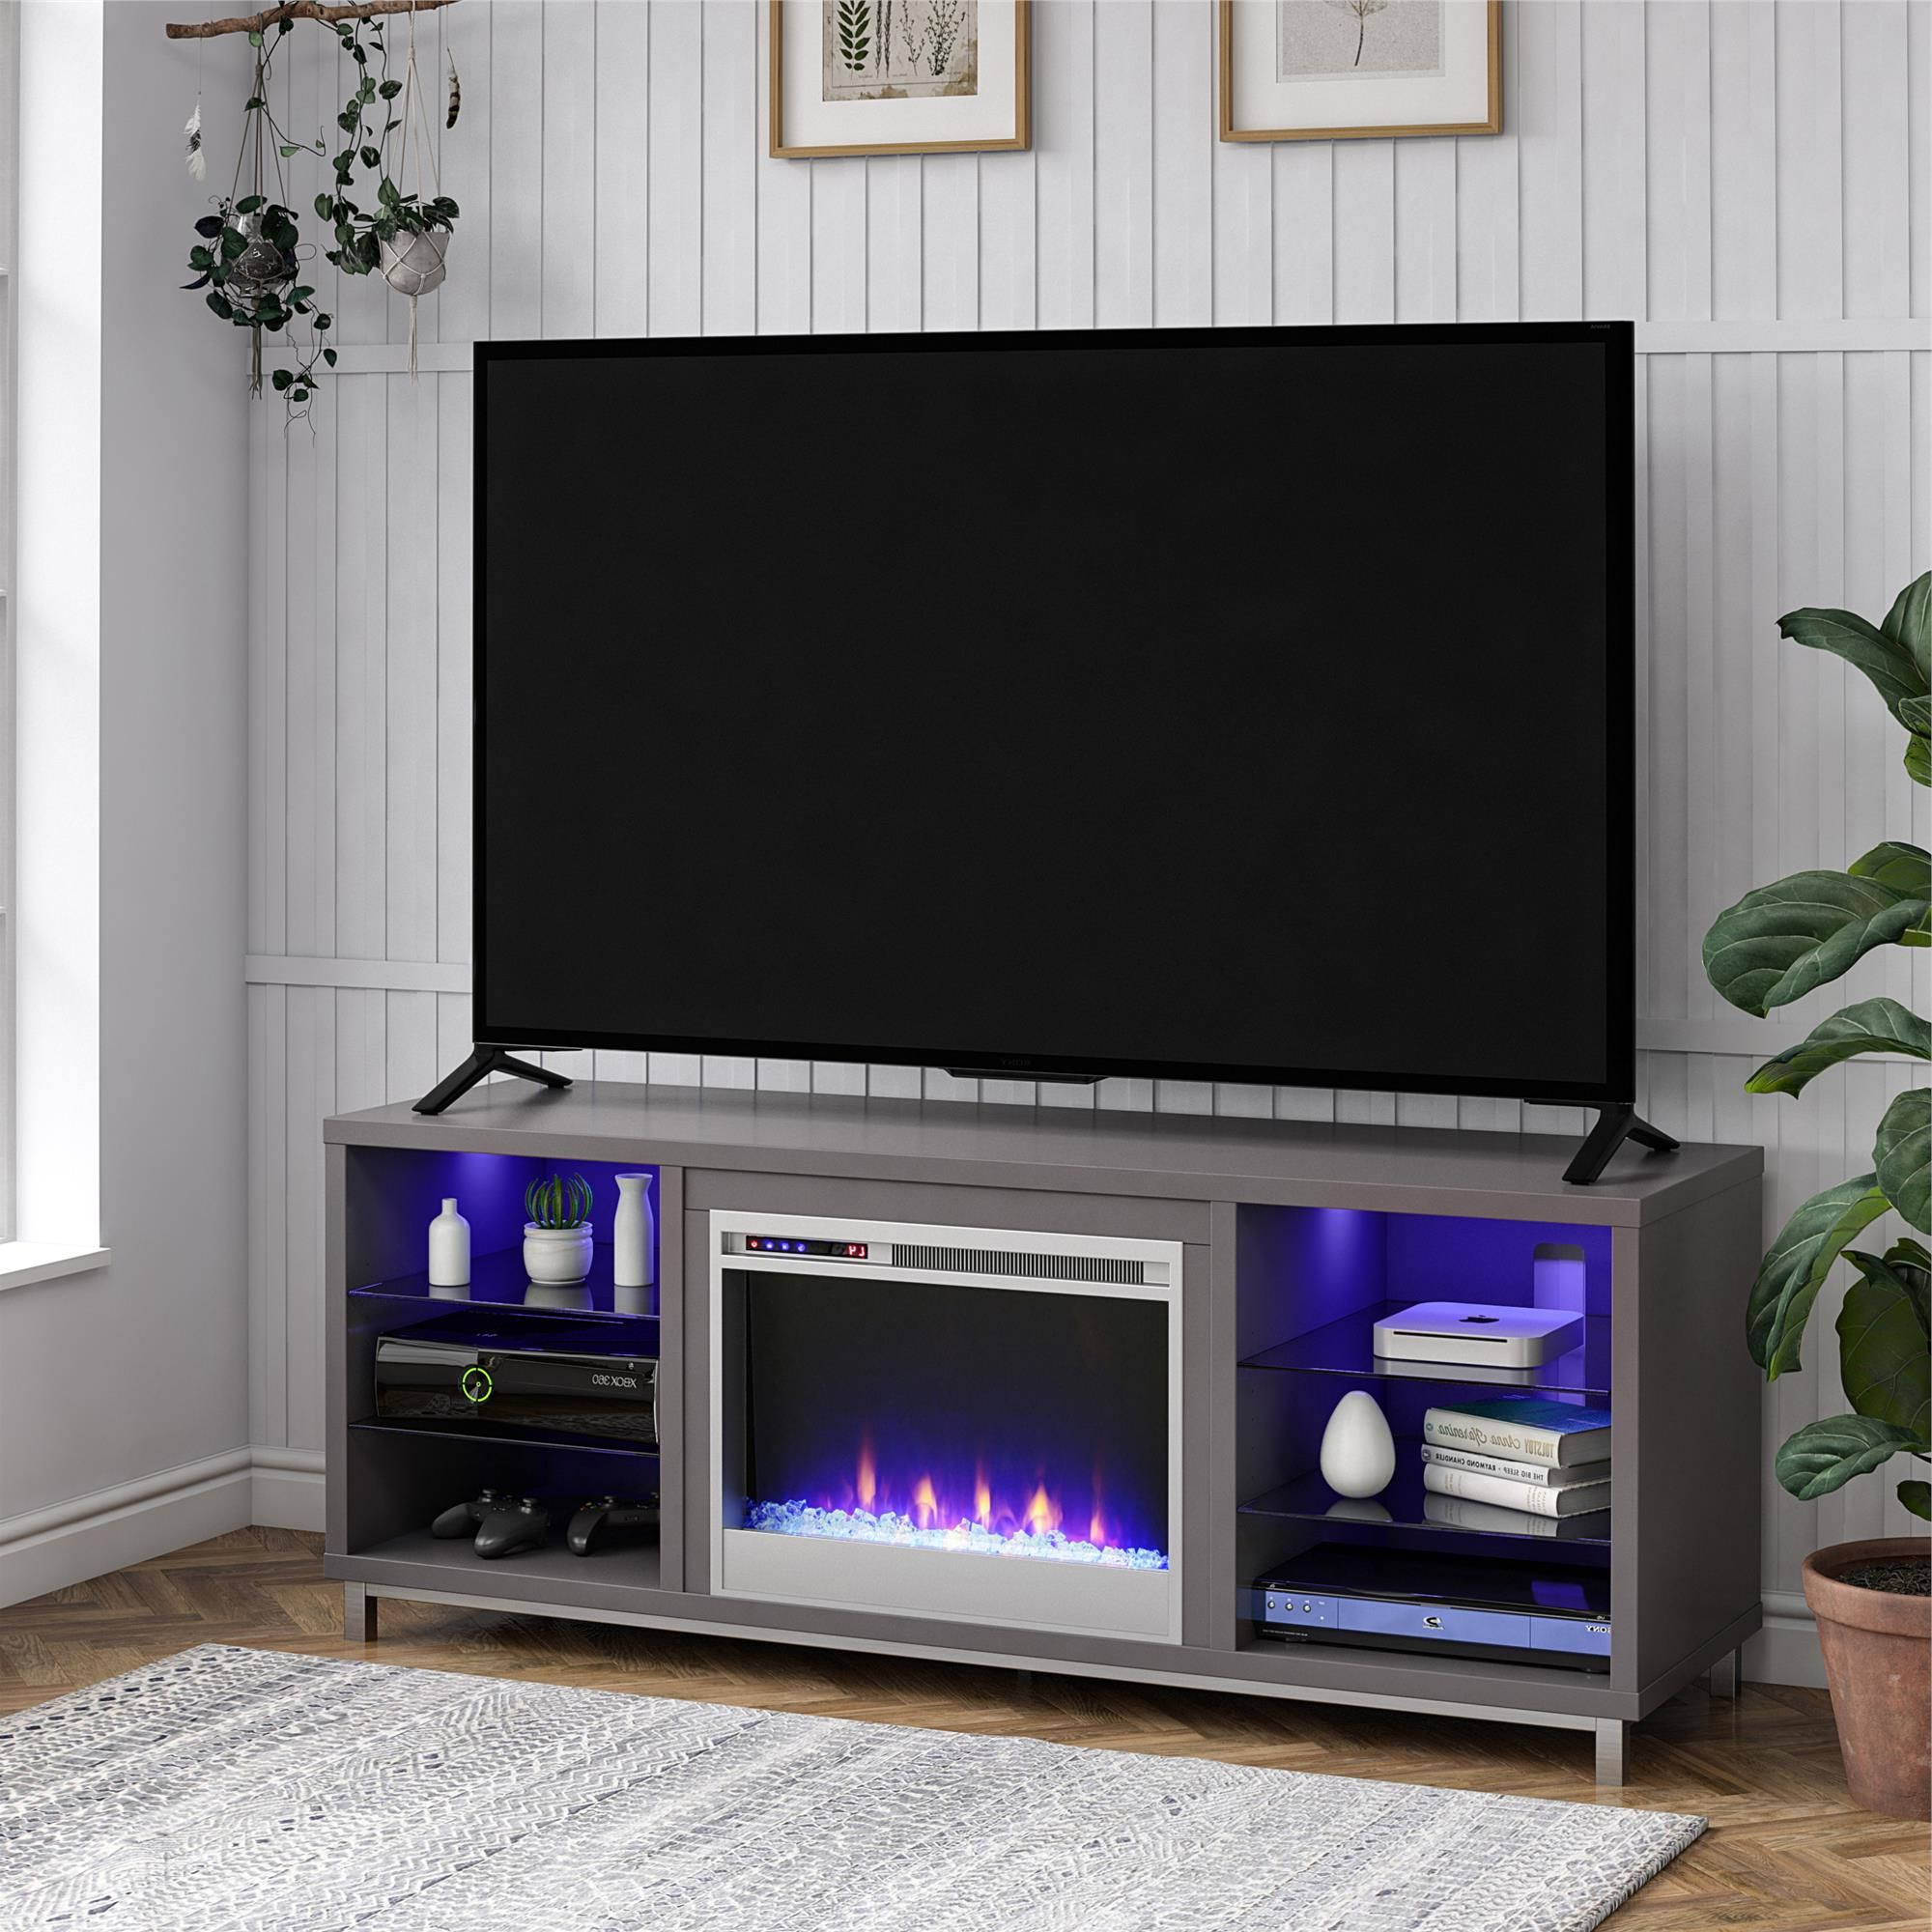 """Chicago Tv Stands For Tvs Up To 70"""" With Fireplace Included For Most Popular Ameriwood Lumina Fireplace Tv Stand For Tvs Up To 70"""" Wide (View 16 of 25)"""